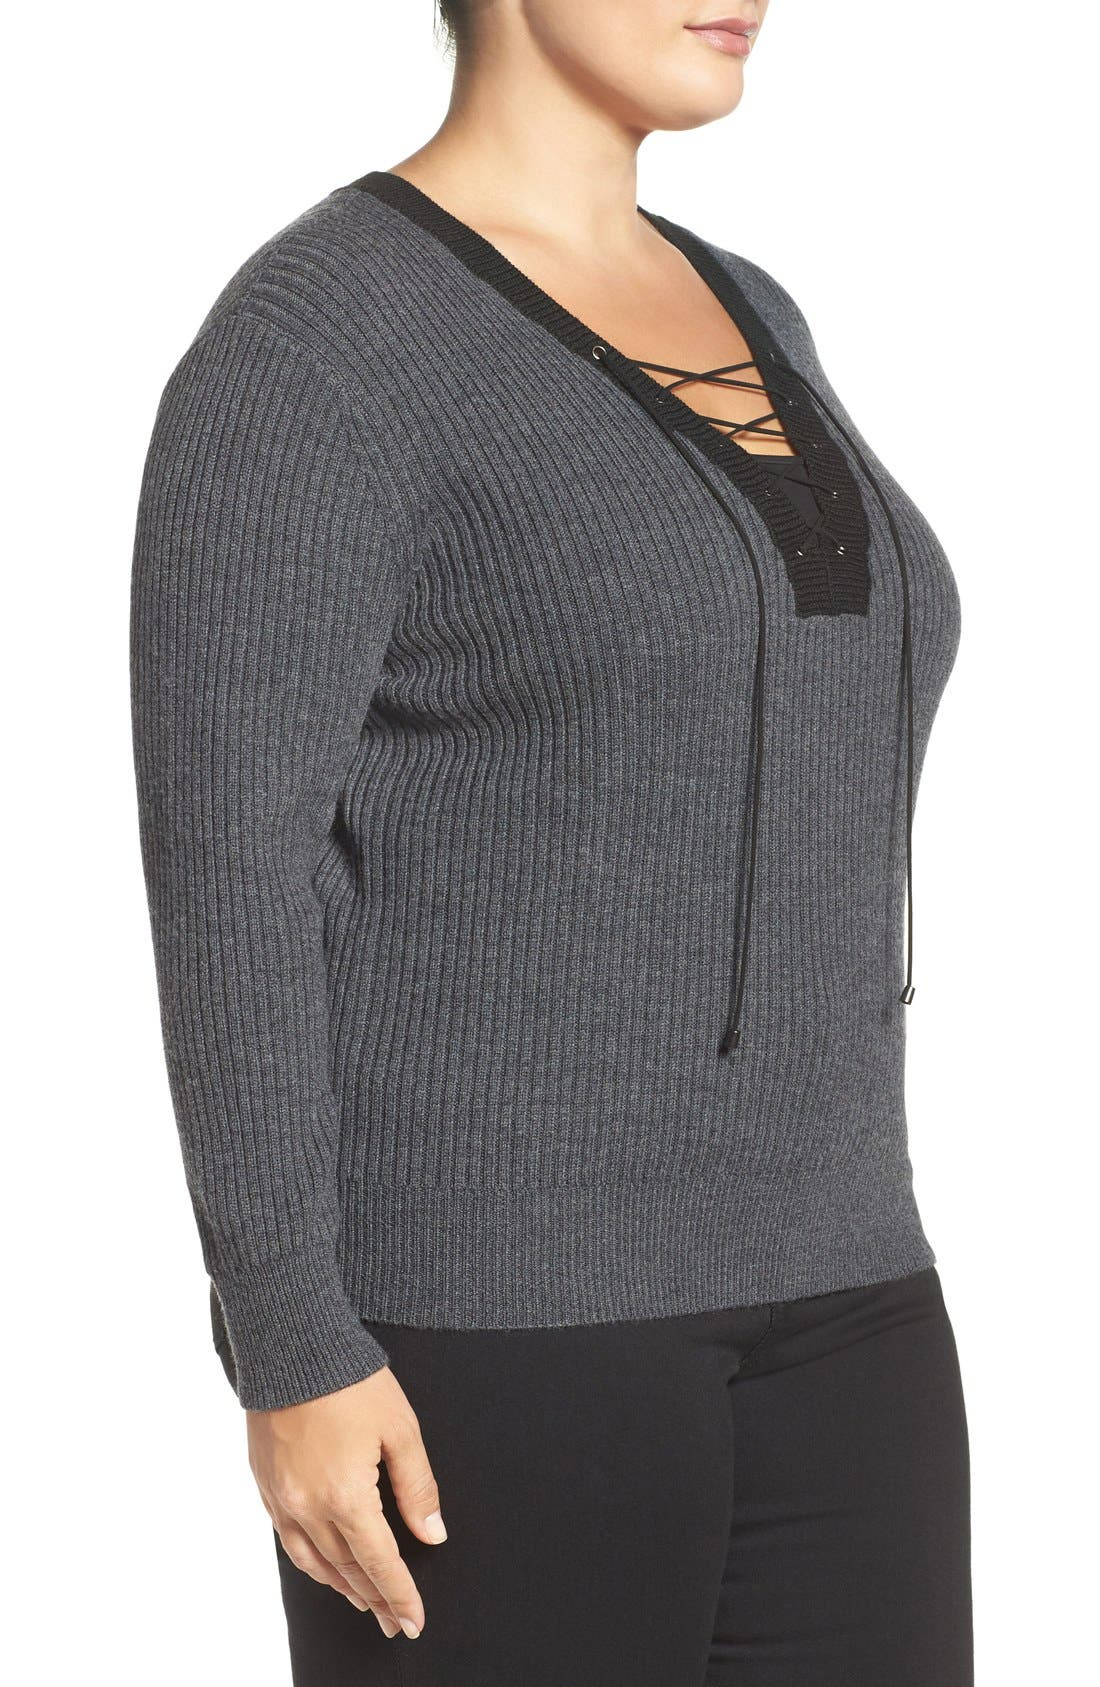 Amity Lace-Up Merino Sweater,                             Alternate thumbnail 4, color,                             027